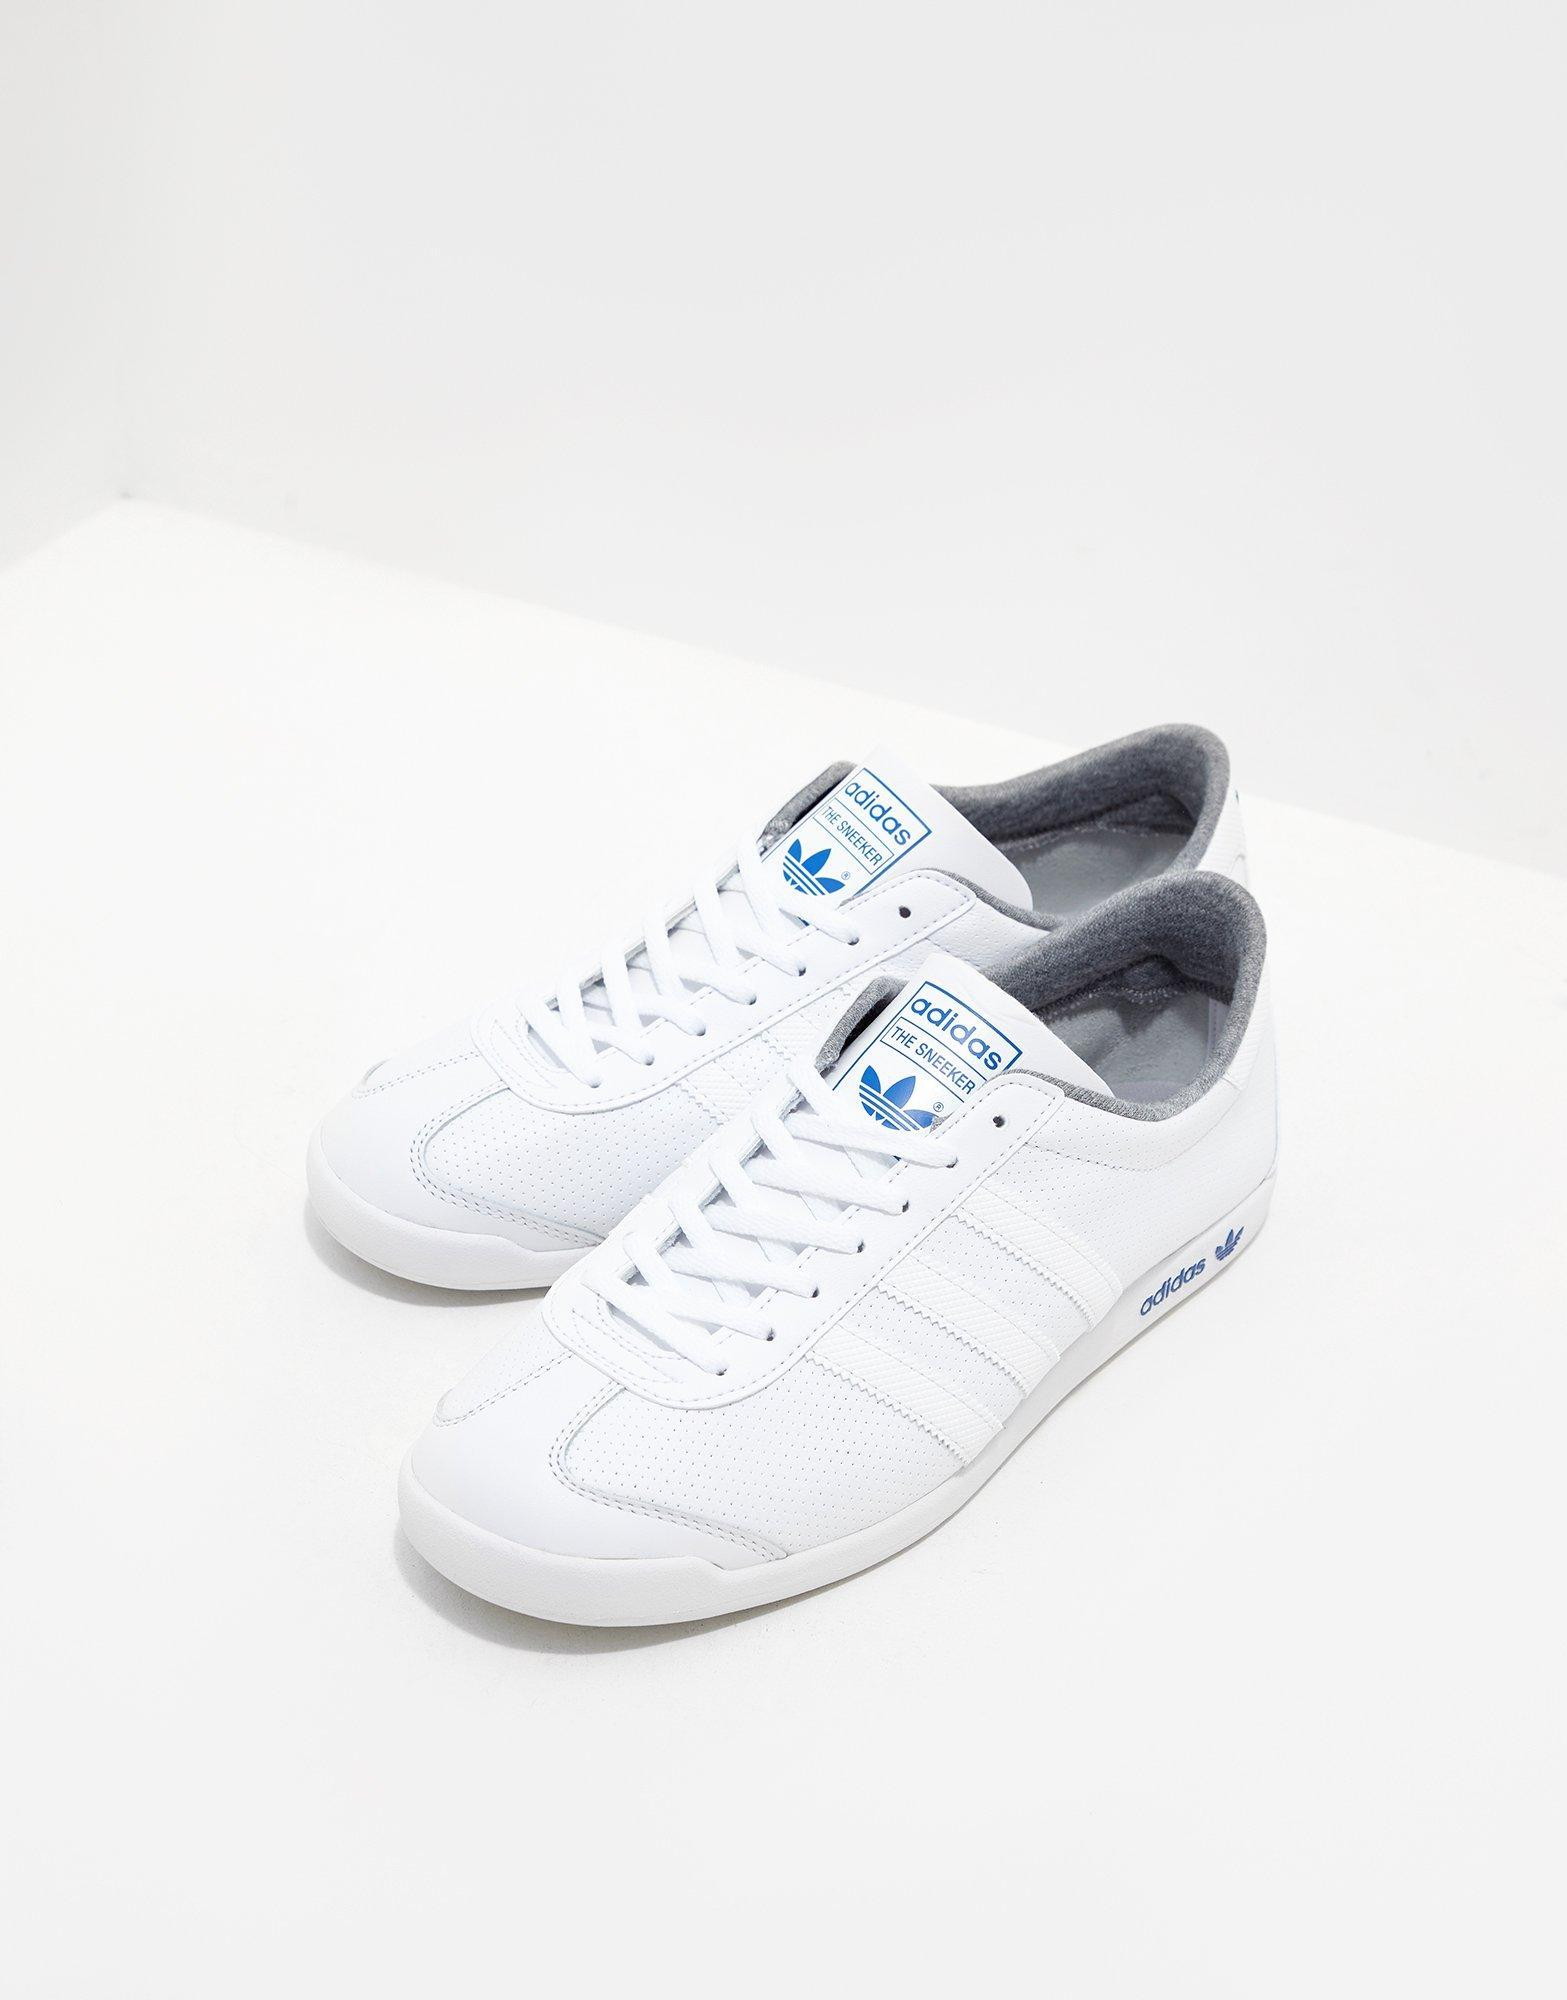 competitive price 5d8fd 79b0e adidas Originals. Mens The Sneeker White